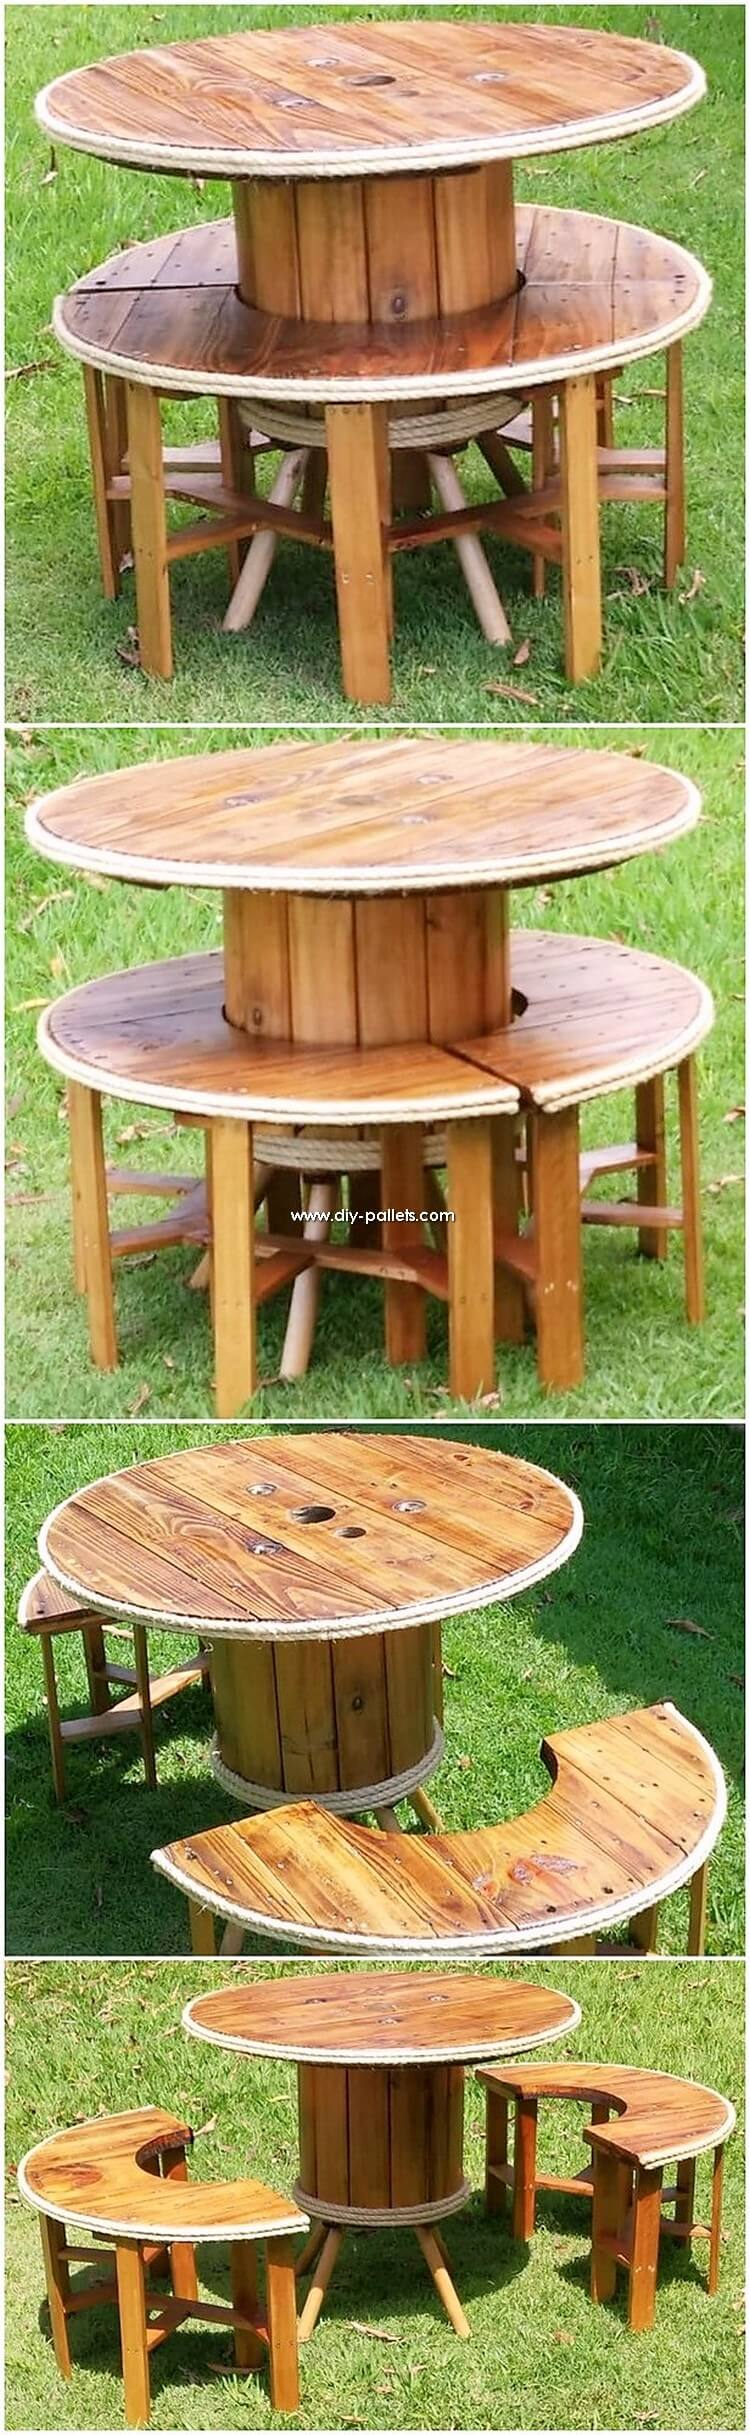 Round Top Pallet Table and Seats